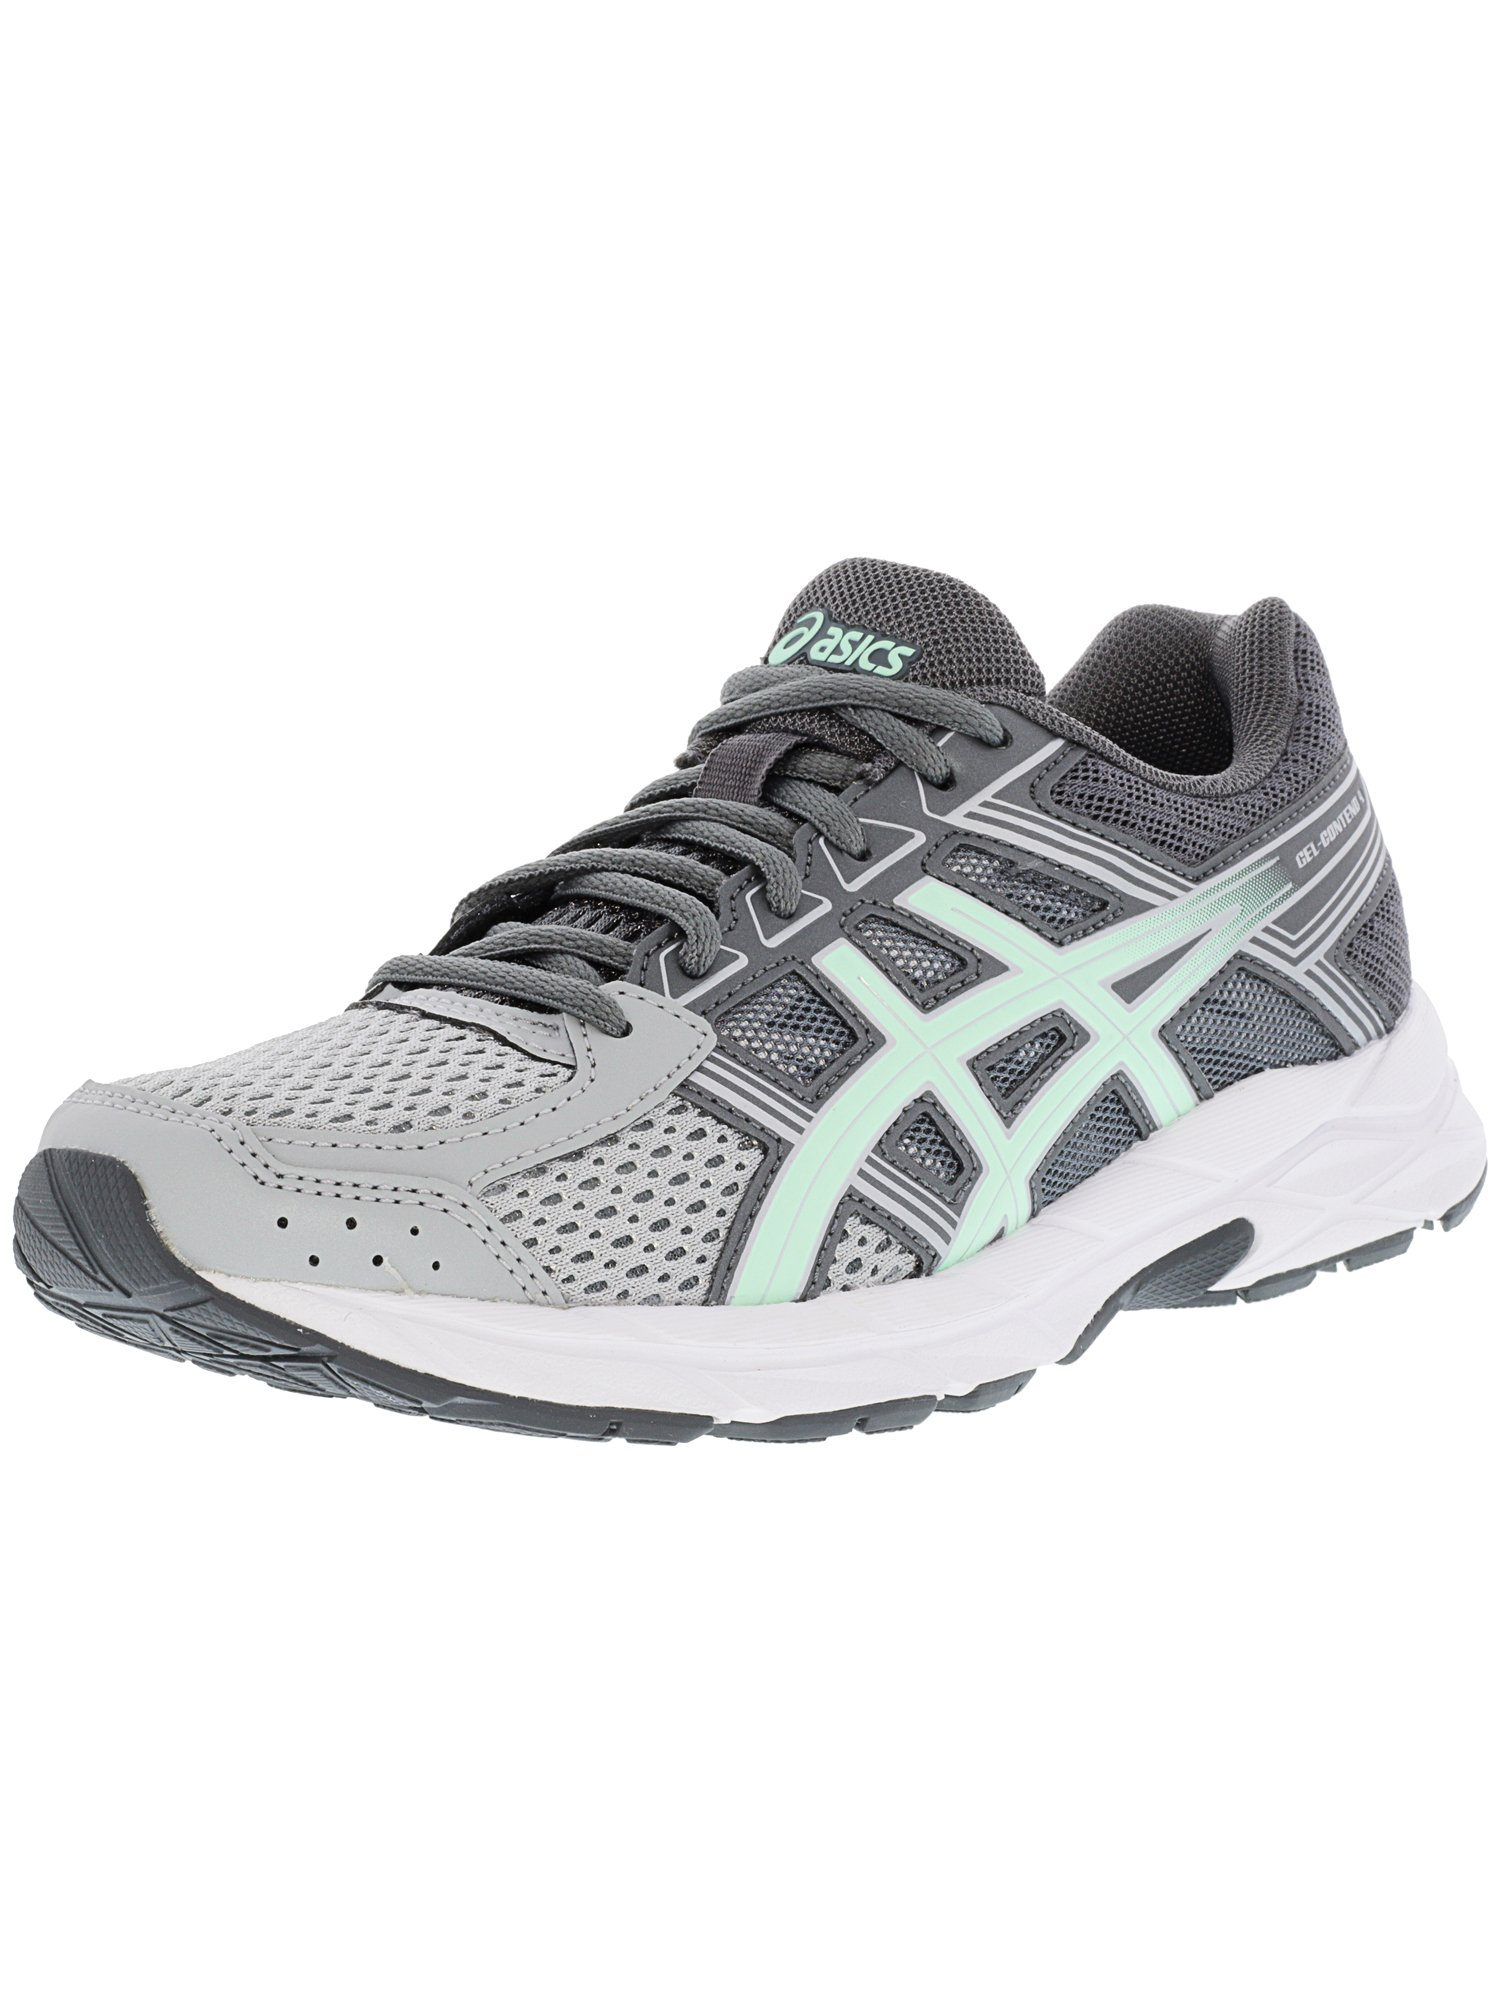 Asics Women's Gel-Contend 4 Mid Grey / Glacier Sea Silver Ankle-High Running Shoe - 6M